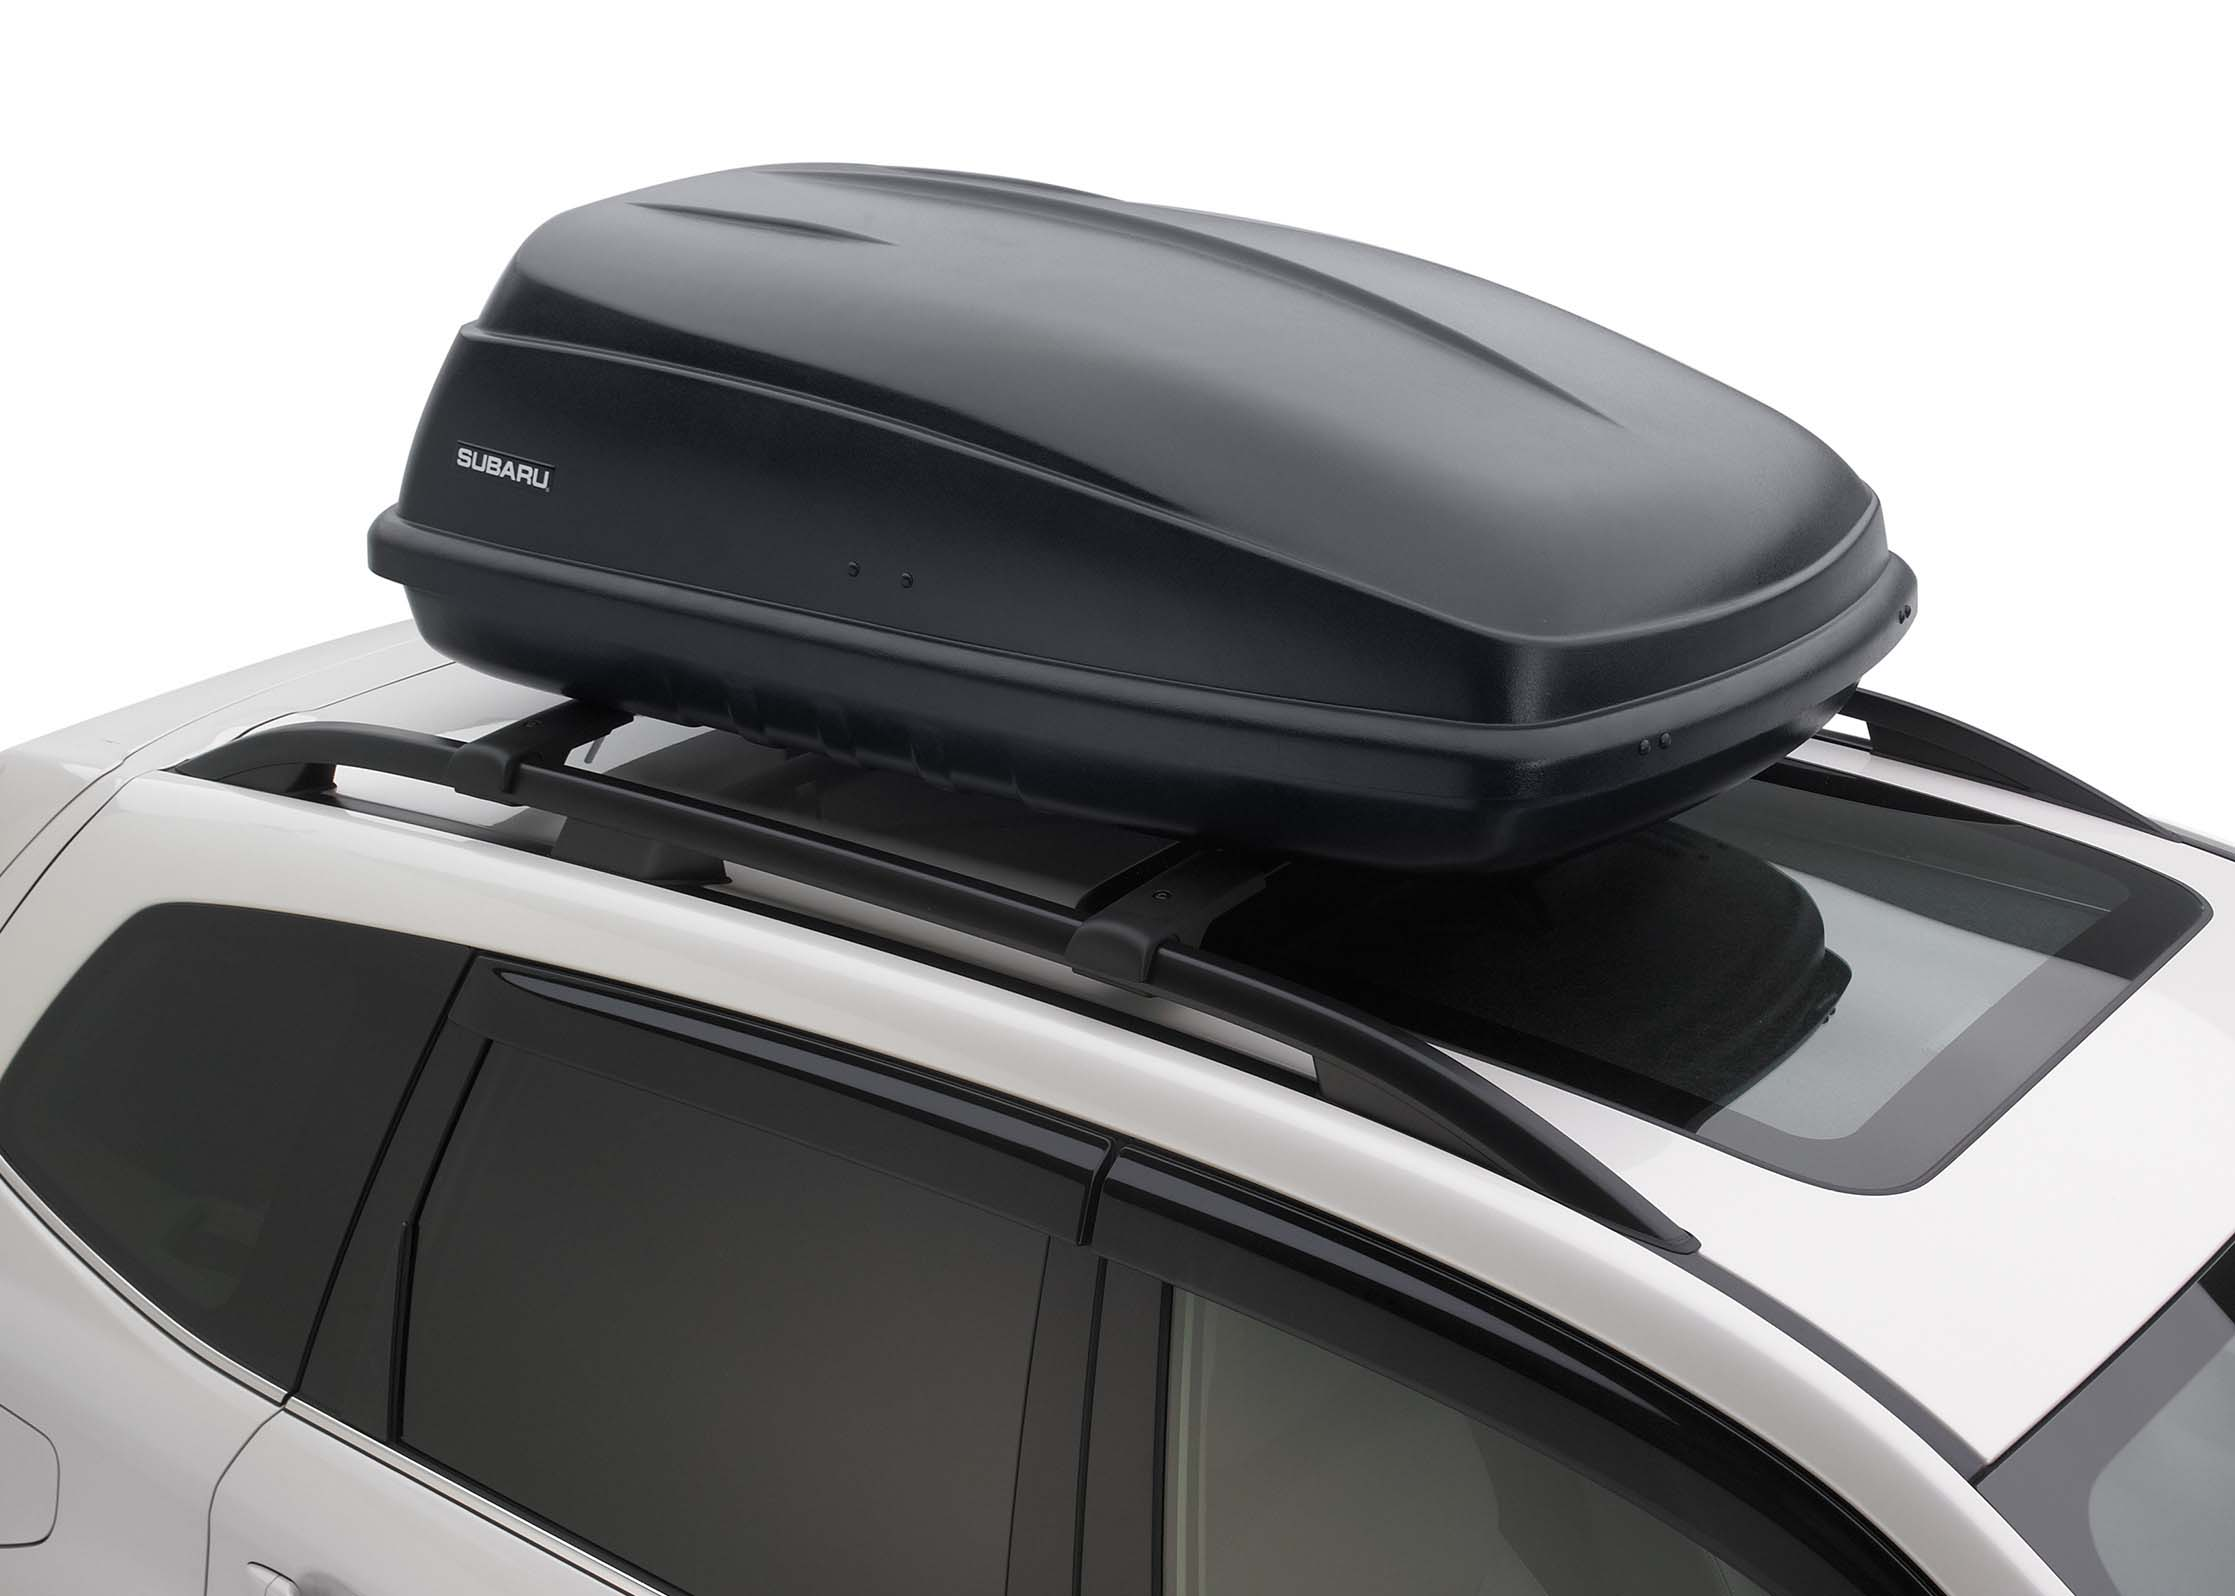 2010 Subaru Forester Roof Cargo Carrier. PB001096 ROOF ...